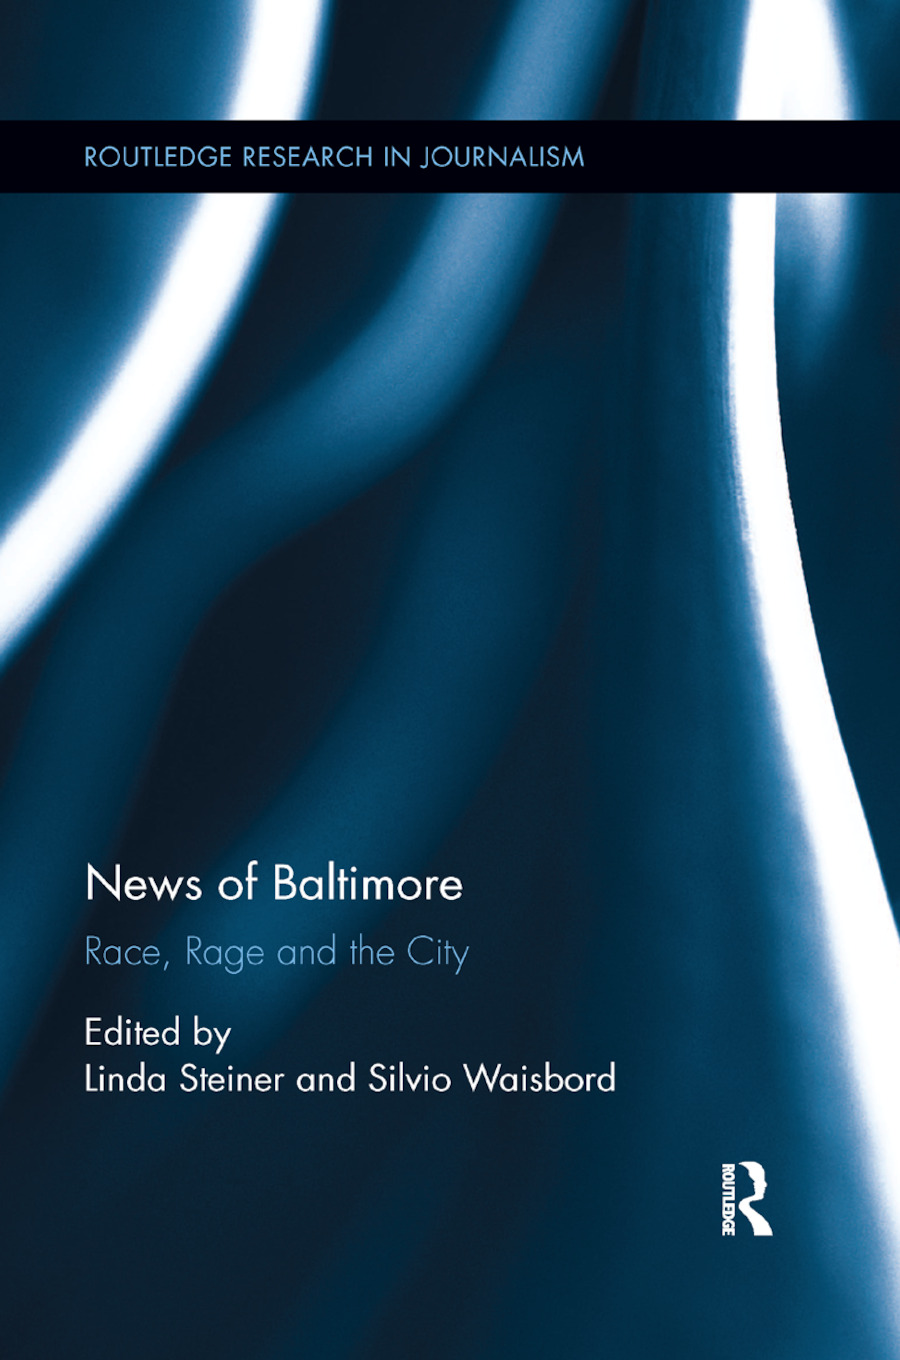 News of Baltimore: Race, Rage and the City book cover